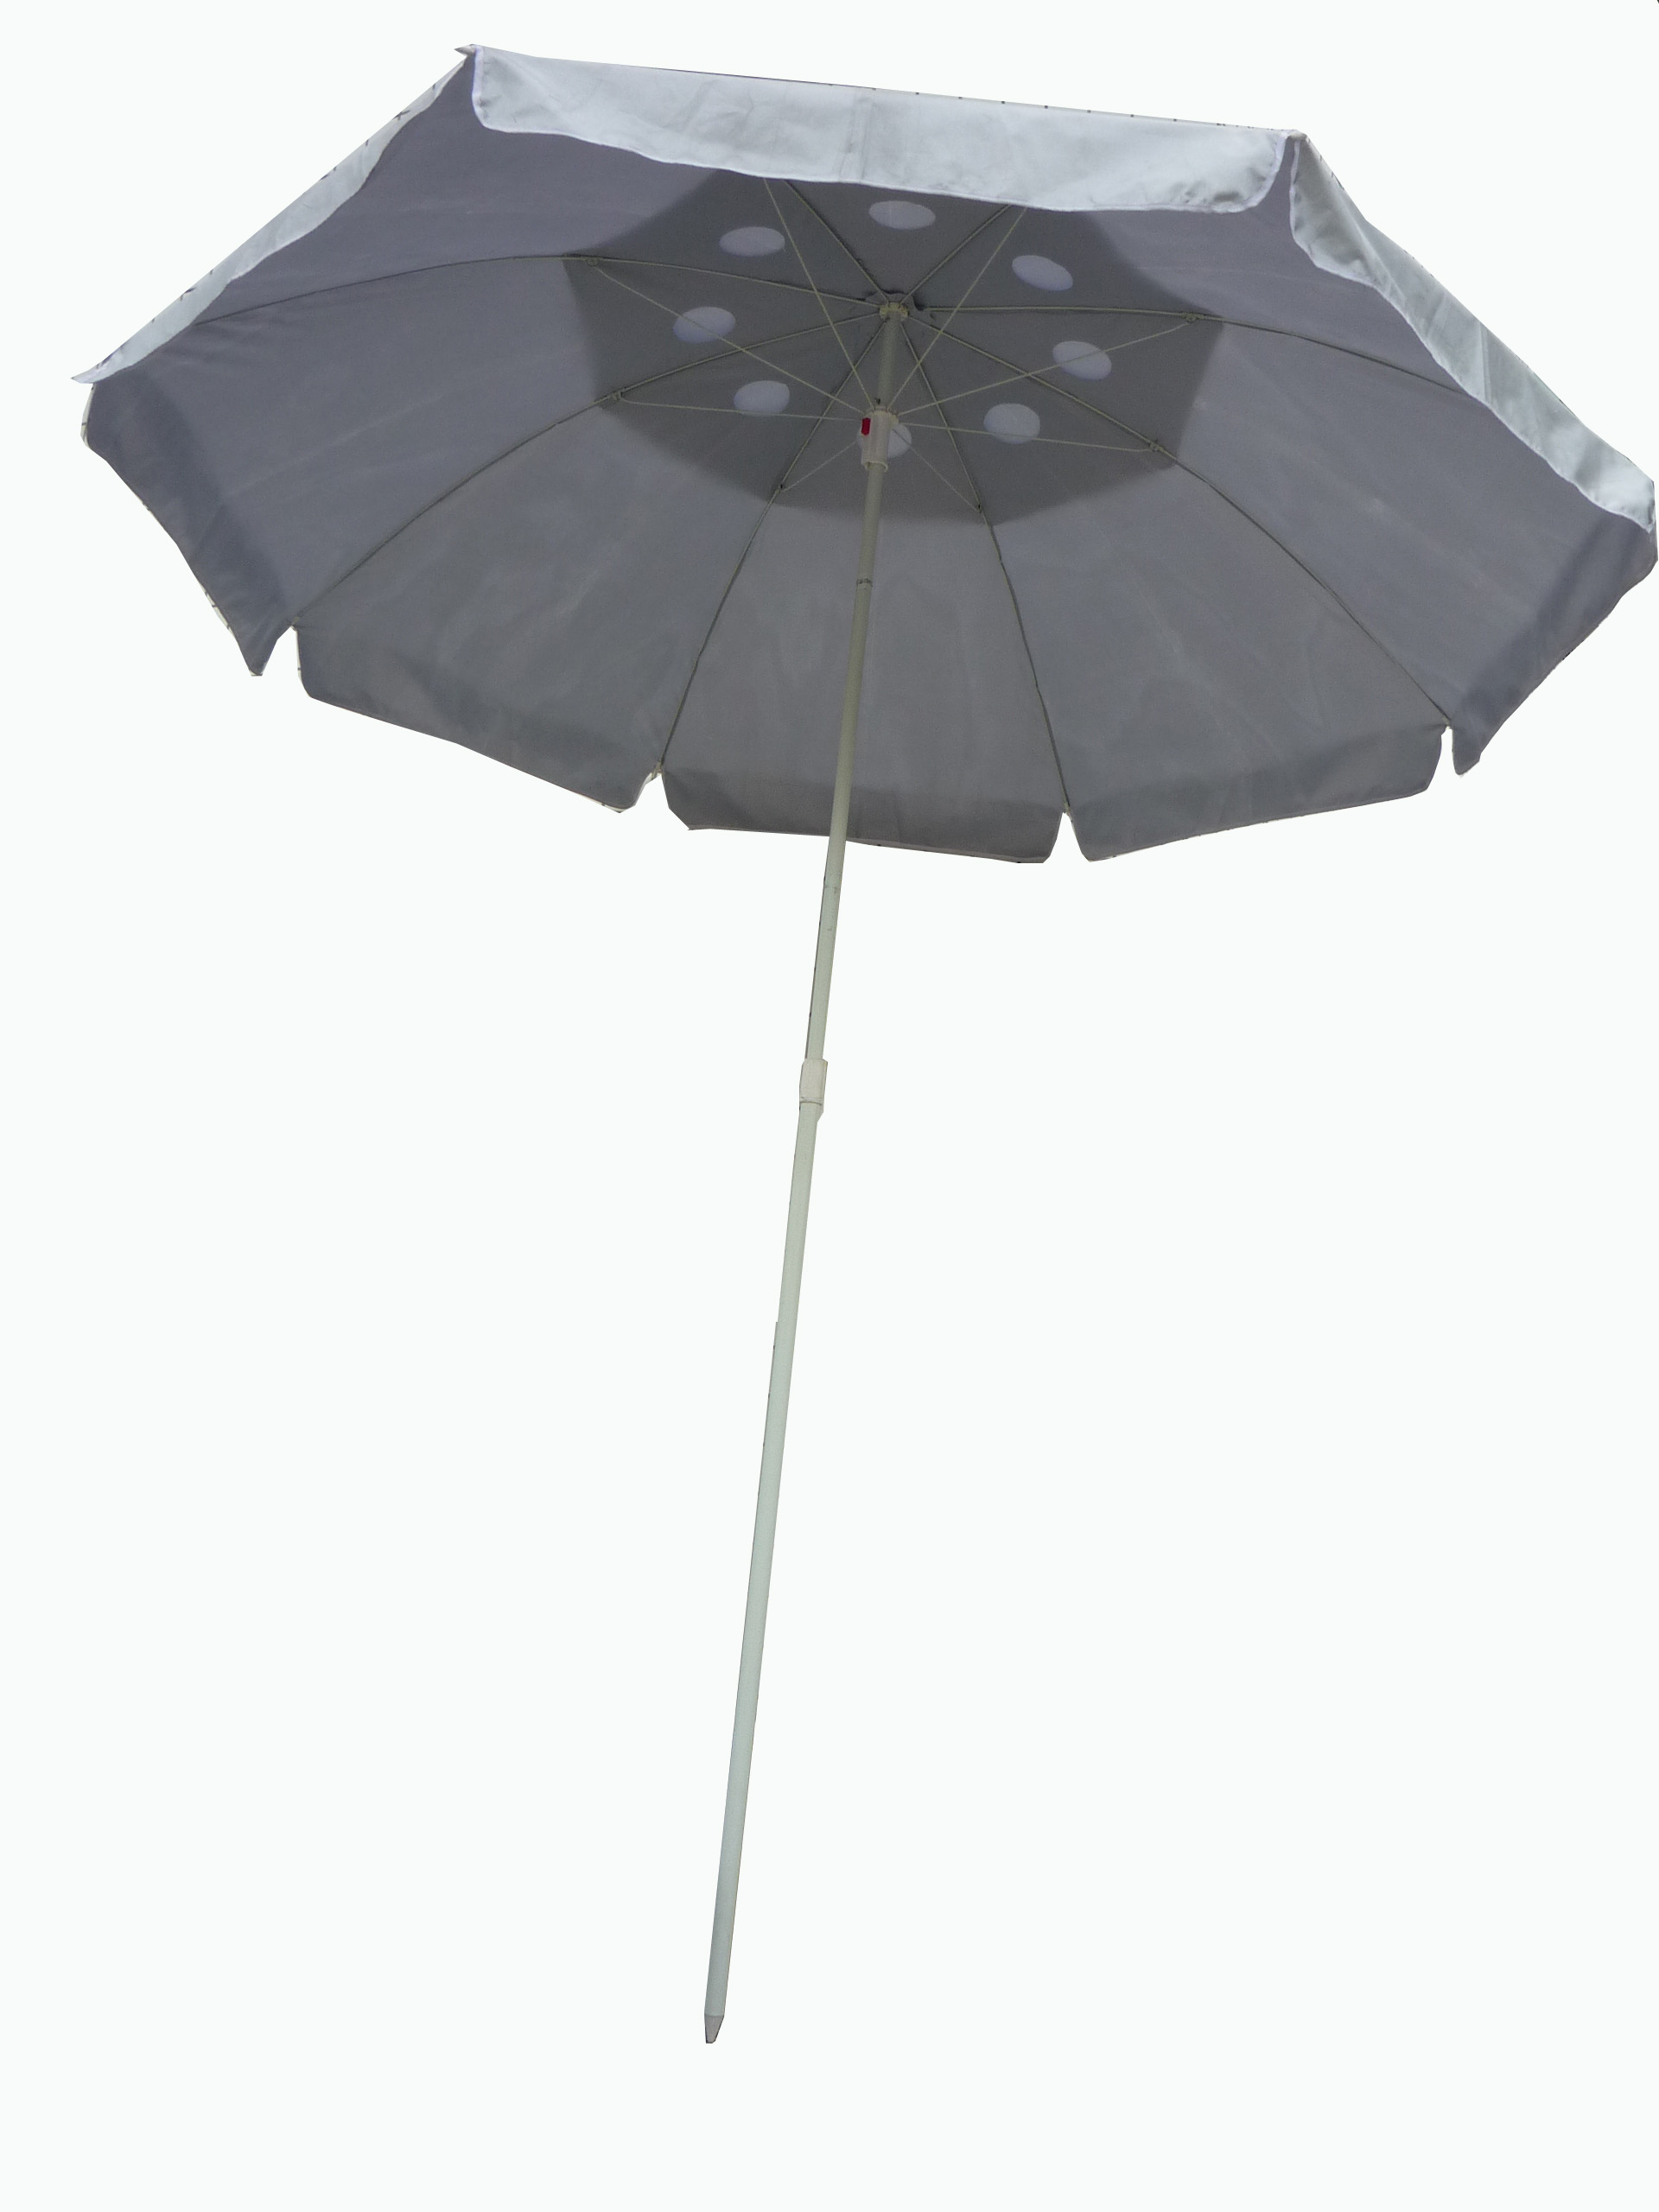 Zenport AGU280 6 foot Field Umbrella (1 inch Pole)